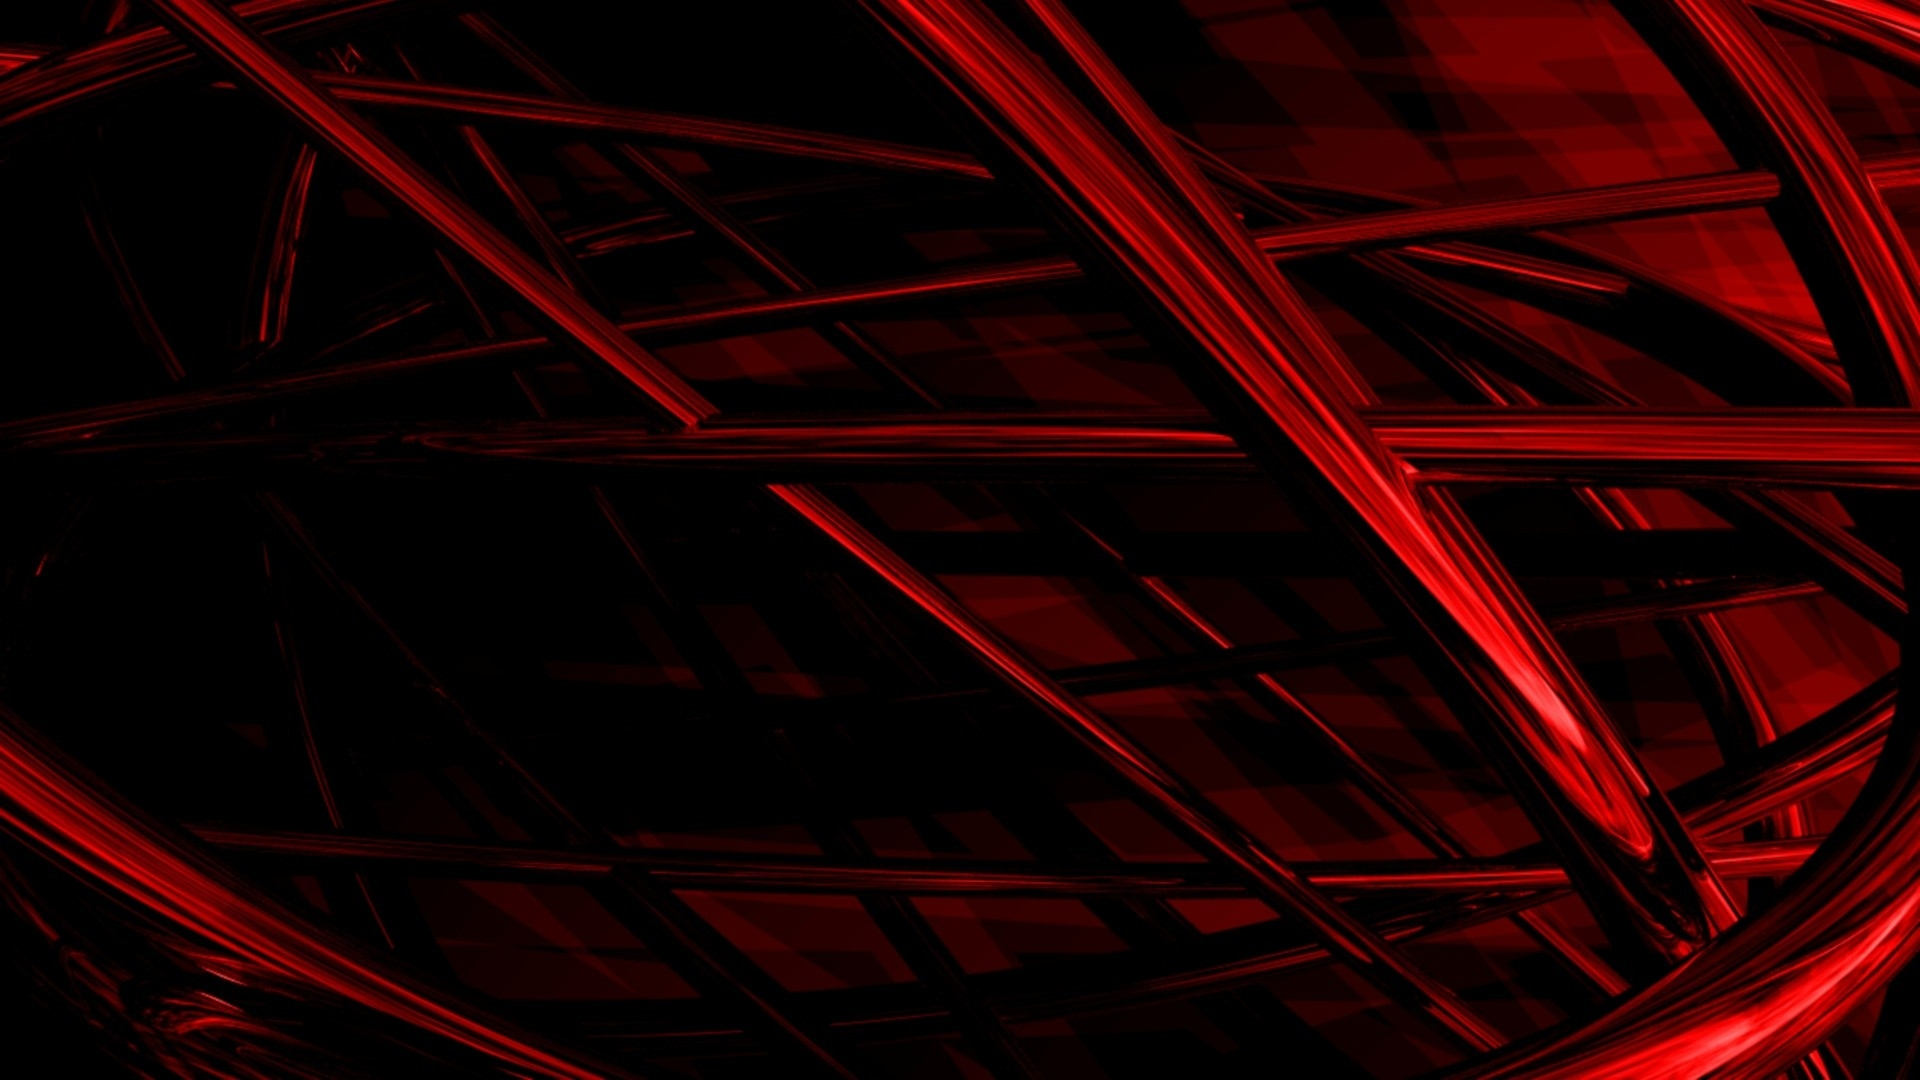 Download Wallpaper 1920x1080 Lines Woven Dark Shadow Red Full